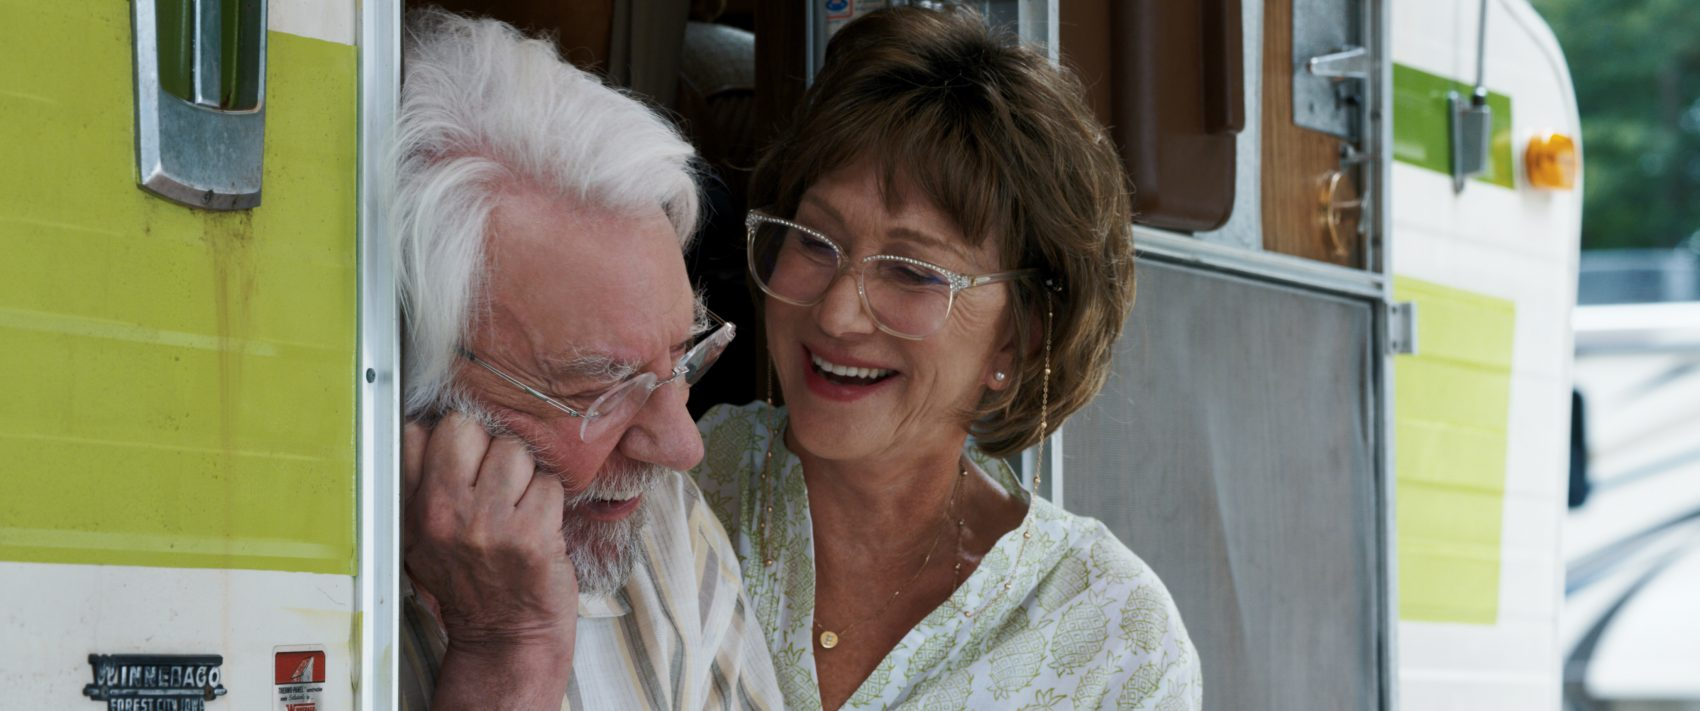 "(Left to right) Donald Sutherland as John Spencer and Helen Mirren as Ella Spencer in ""The Leisure Seeker."" (Luca Bigazzi, Courtesy of Sony Pictures Classics)"